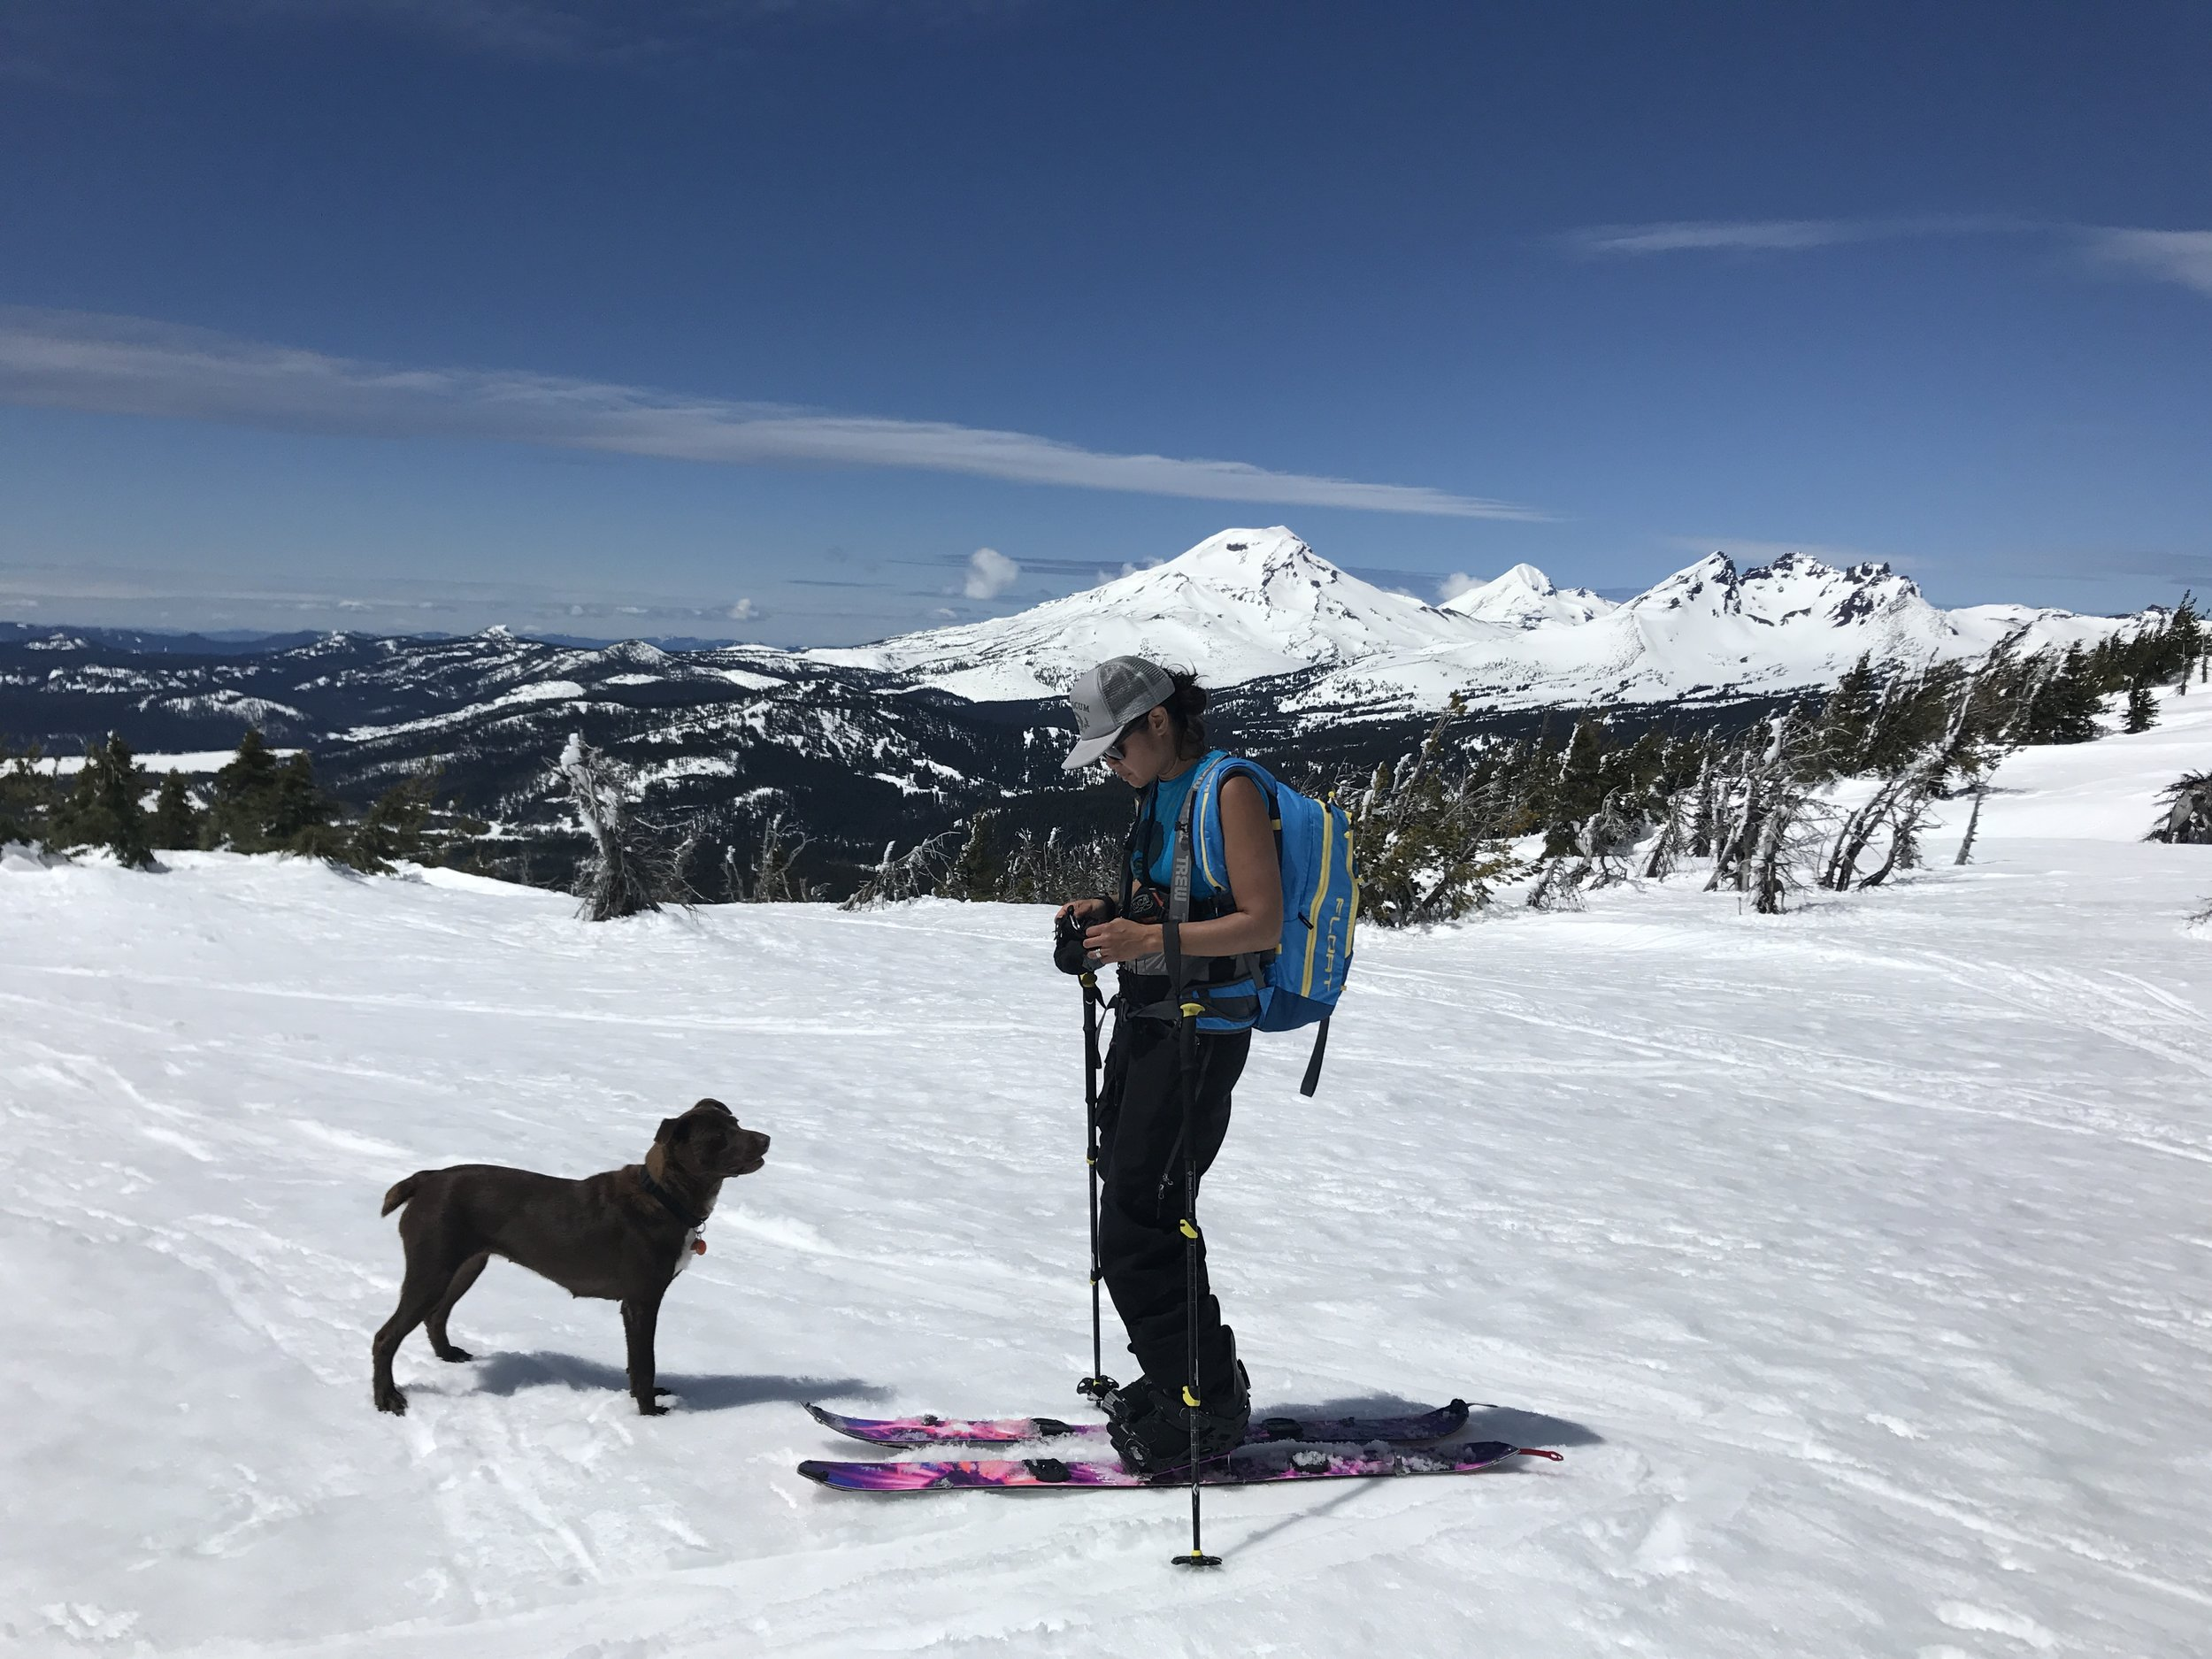 Did a little tour up Mt. Tumalo, with Rosa, who we had rescued just a couple months earlier. The Sisters in the background.